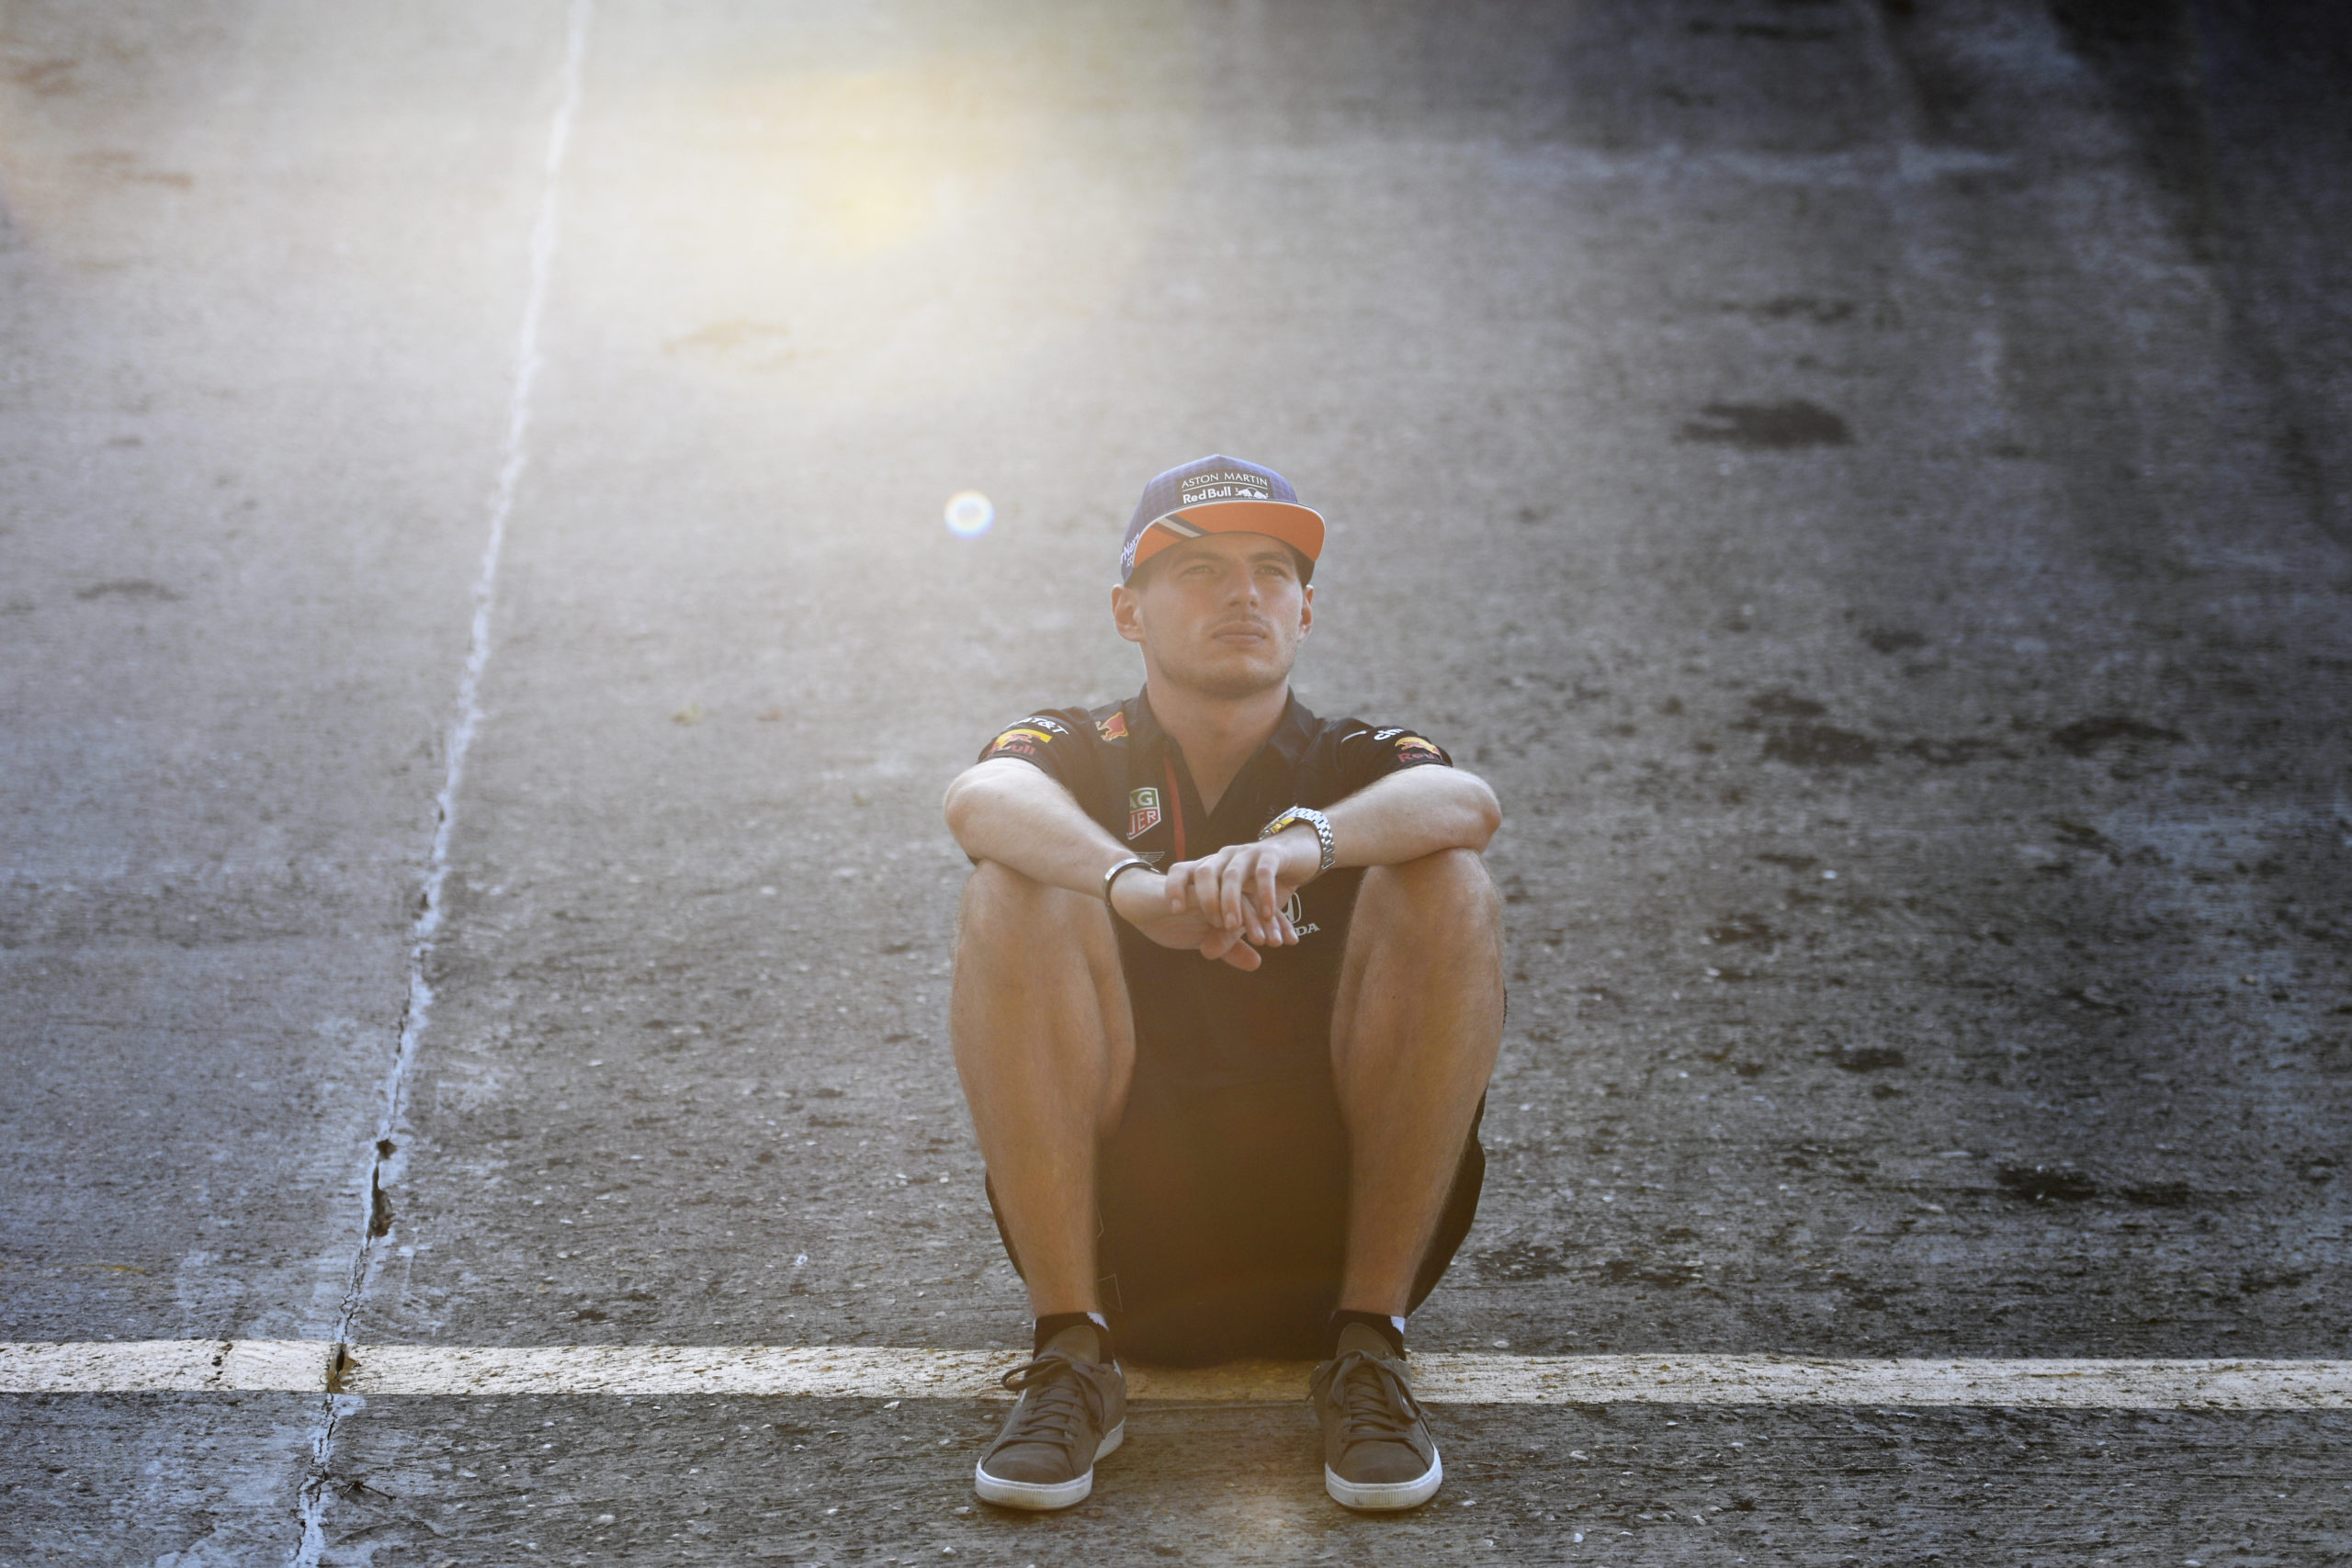 MONZA, ITALY - SEPTEMBER 03: Max Verstappen of Netherlands and Red Bull Racing looks on from the old circuit banking during previews ahead of the F1 Grand Prix of Italy at Autodromo di Monza on September 03, 2020 in Monza, Italy. (Photo by Rudy Carezzevoli/Getty Images) // Getty Images / Red Bull Content Pool  // SI202009040028 // Usage for editorial use only //